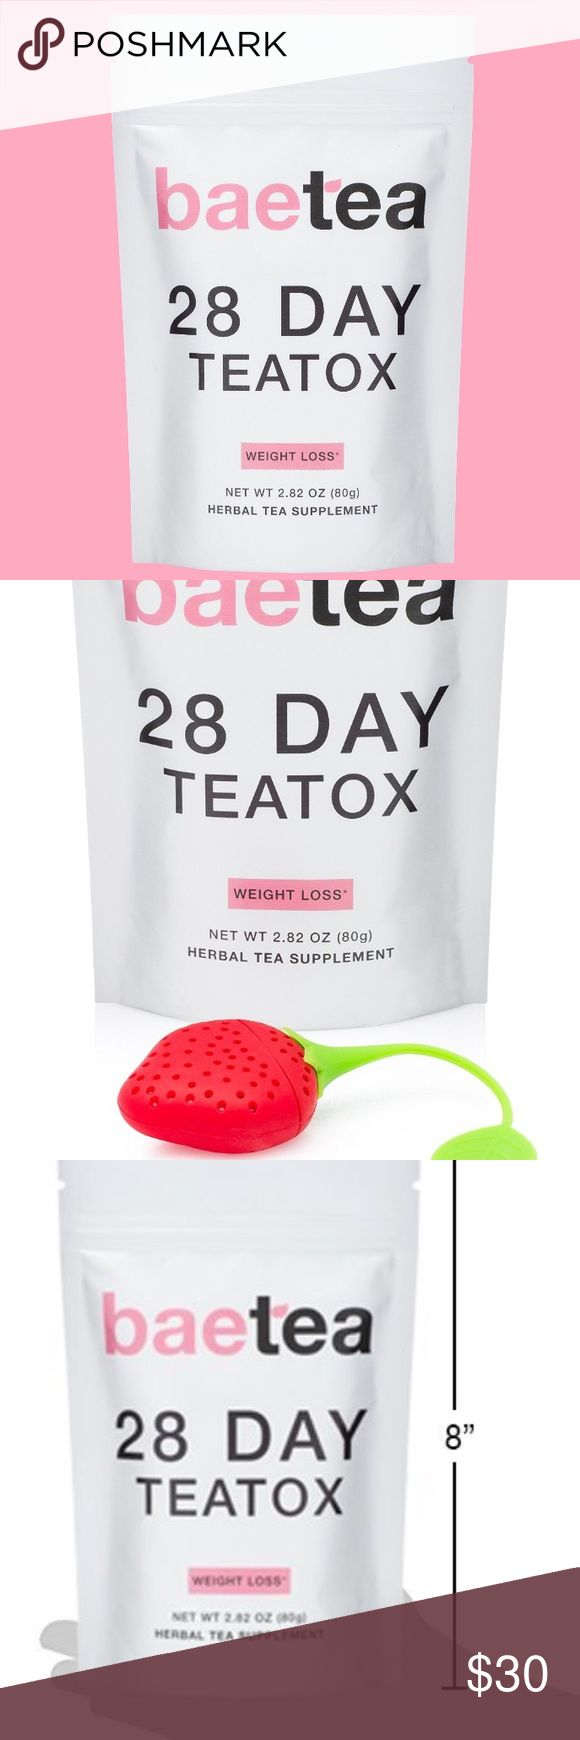 ✨NEW✨Weight-loss TEATOX FREE INFUSER INCL  28 DAY TEATOX - Happy Healthy Amazon Citizens Agree That Baetea 28 Day Teatox Is The Best They Ever Tried. REDUCE YOUR BLOATING - Helps You Reduce Bloat To Achieve That Flat Tummy. Aid Your Digestion and Get Rid of Toxins To Help Relieve Excessive Bloating. DELICIOUS TASTING TEA - Delicious Blend Of Traditional Organic Herbs With Oolong Wu Yi Tea From China's Fujian Province. Enjoy Choice Organic Green Tea, Organic Rooibos, Ginger; NO LAXATIVE…